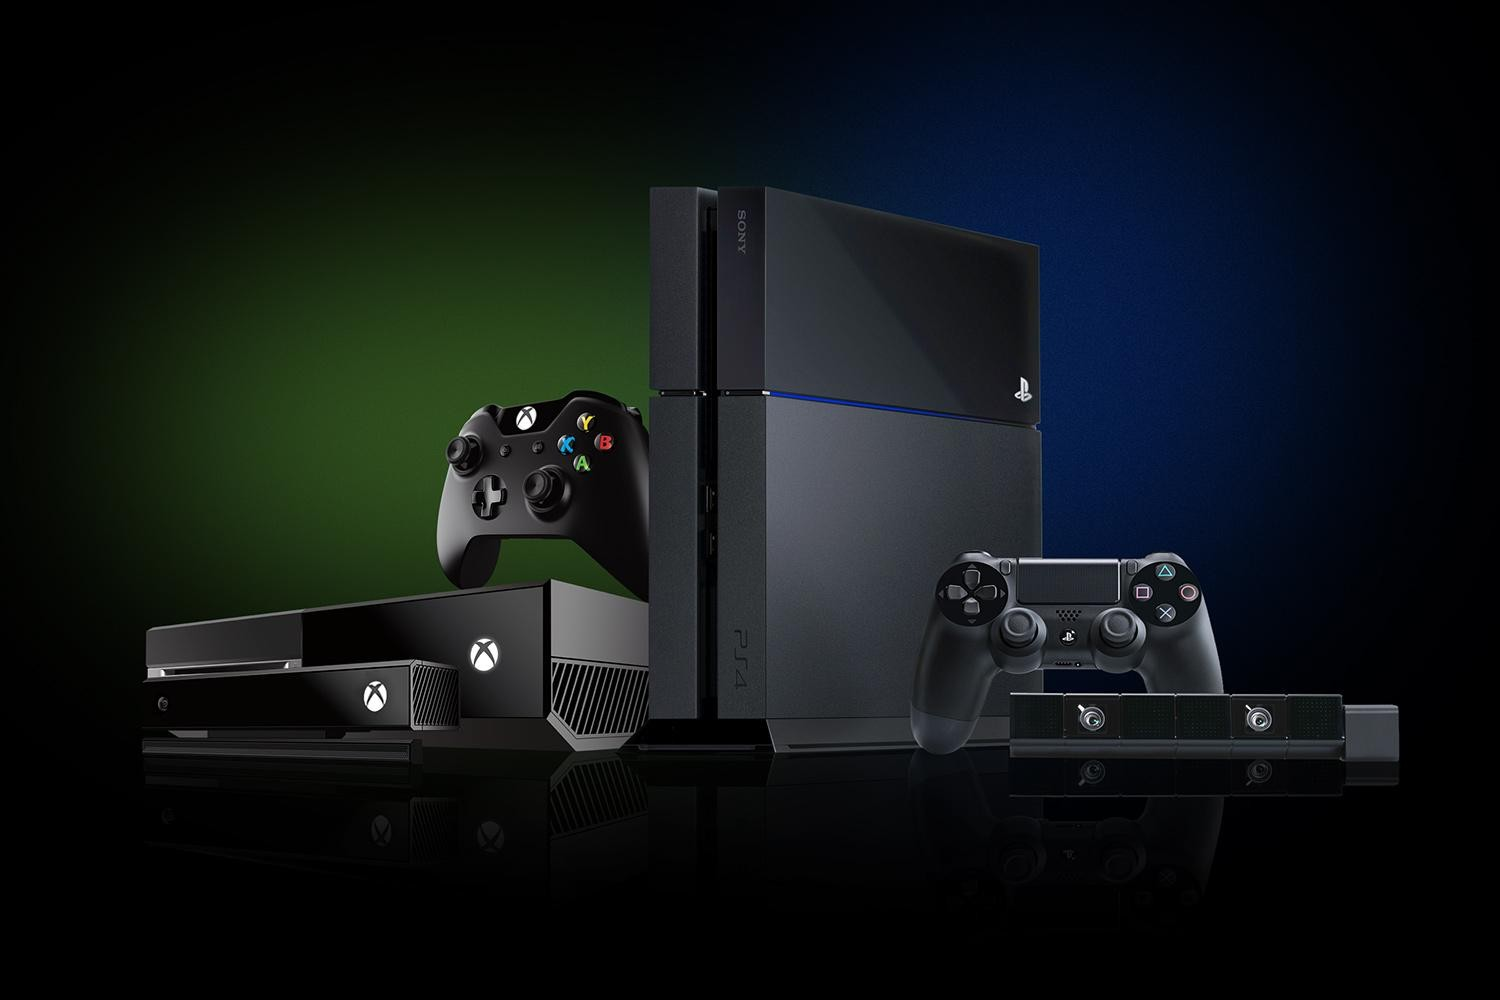 PS4 Pro specs are 'not enough to do true 4K,' says Xbox executive